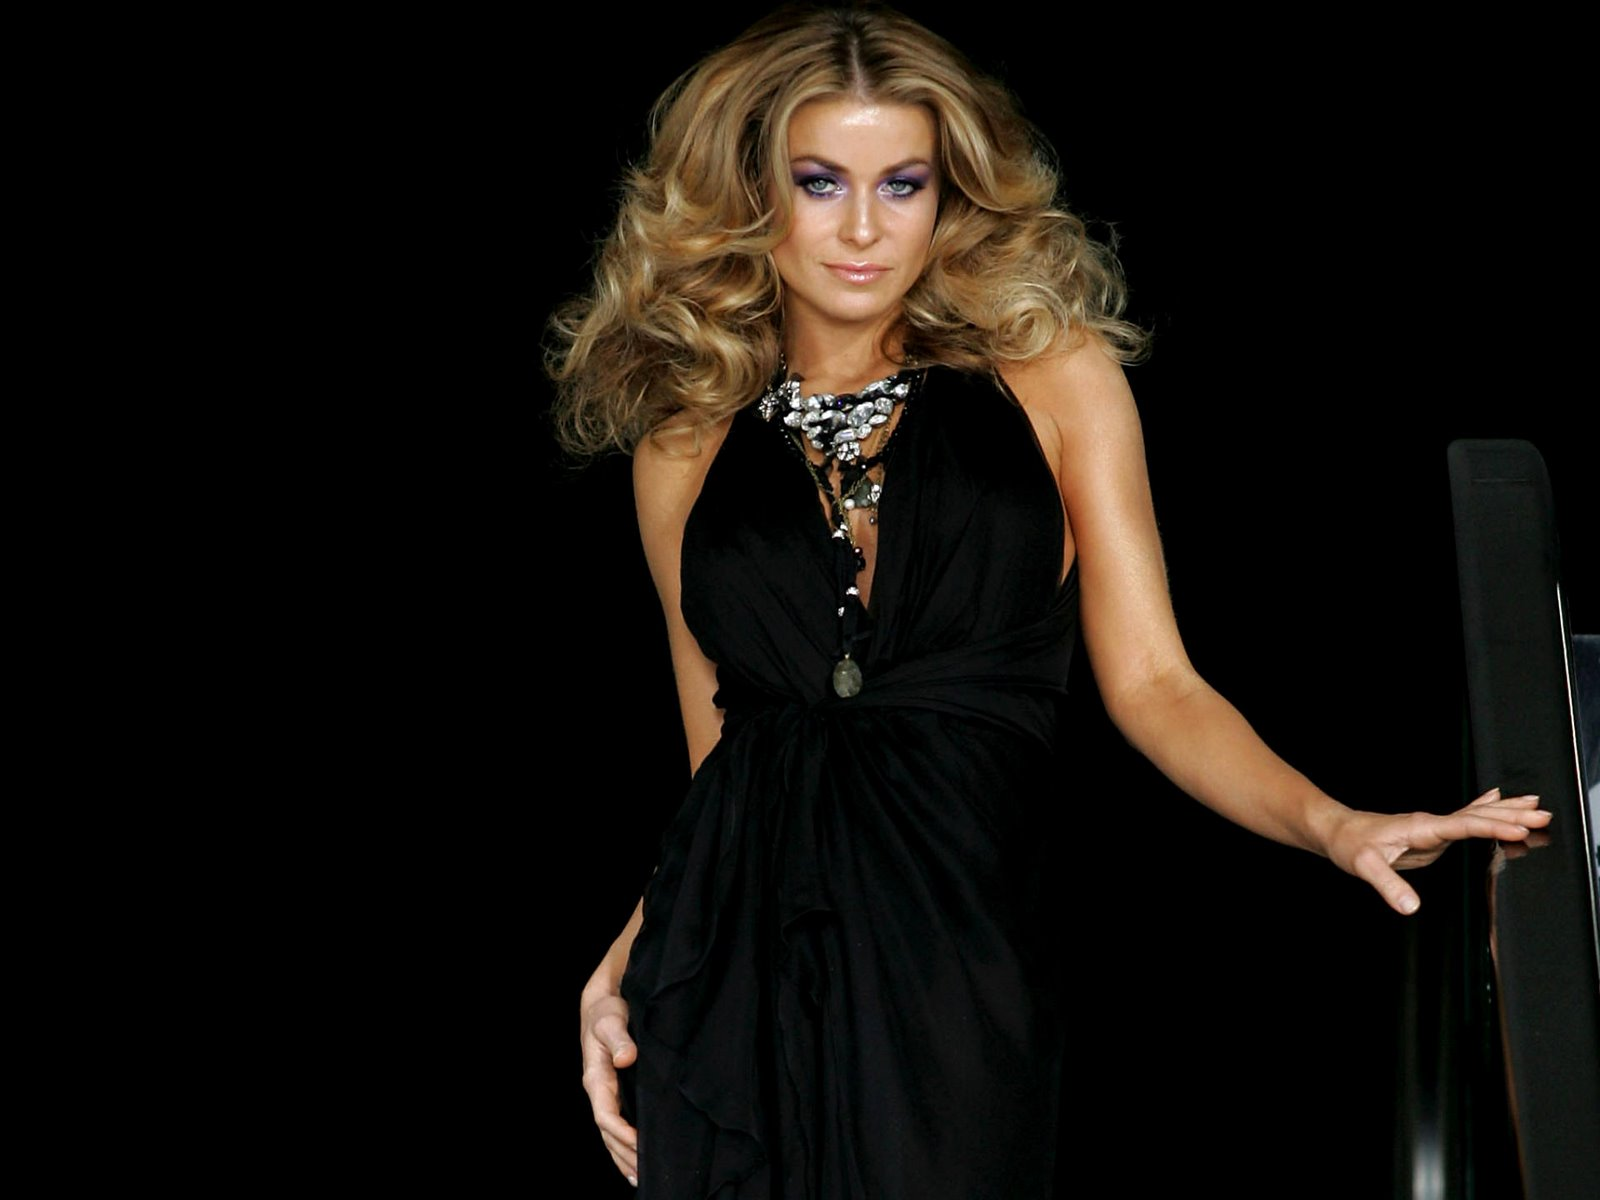 Carmen Electra Wallpapers Download Free Bikinisexy -6659